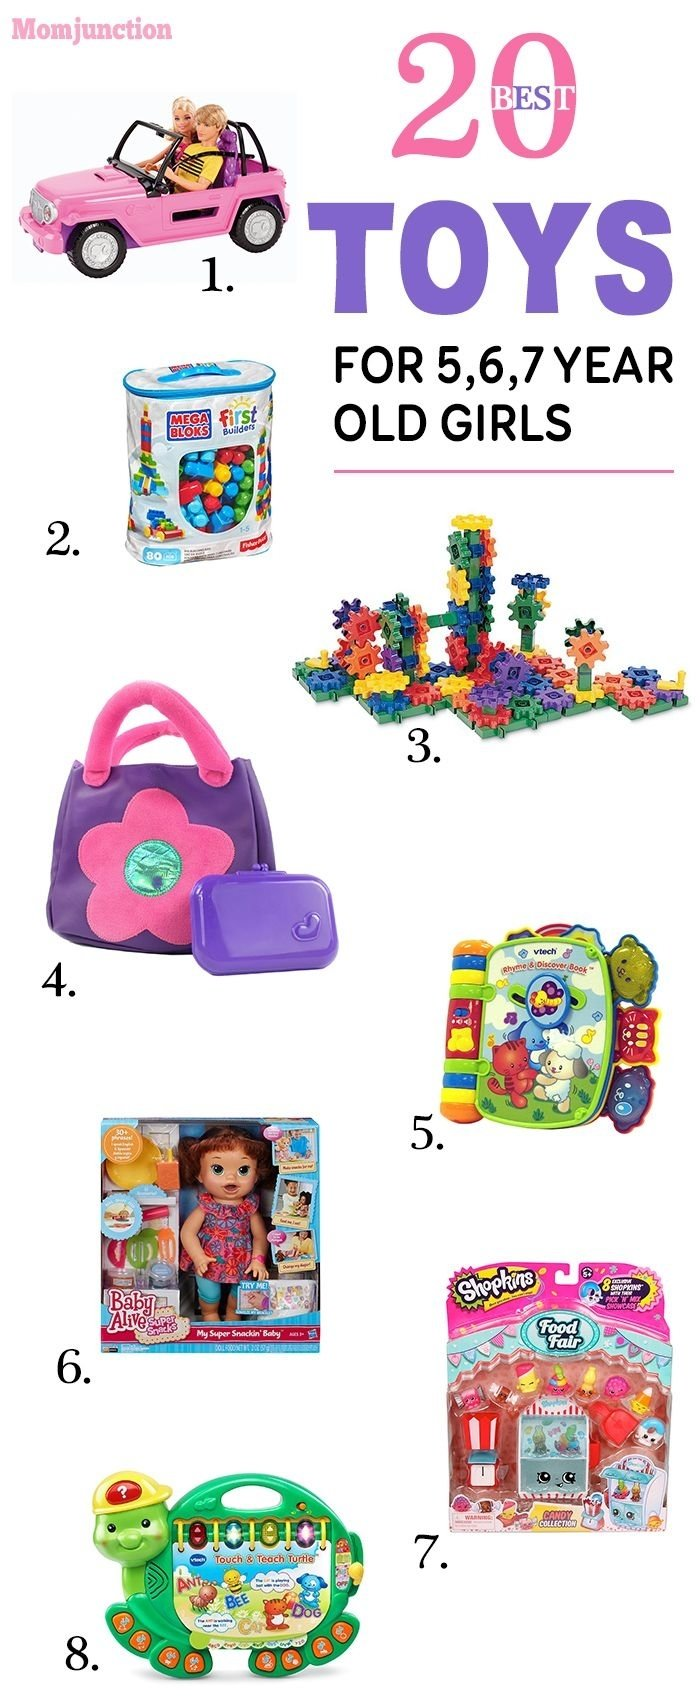 15 best toys for 5,6 and 7-year-old girls | toy, girls and christmas